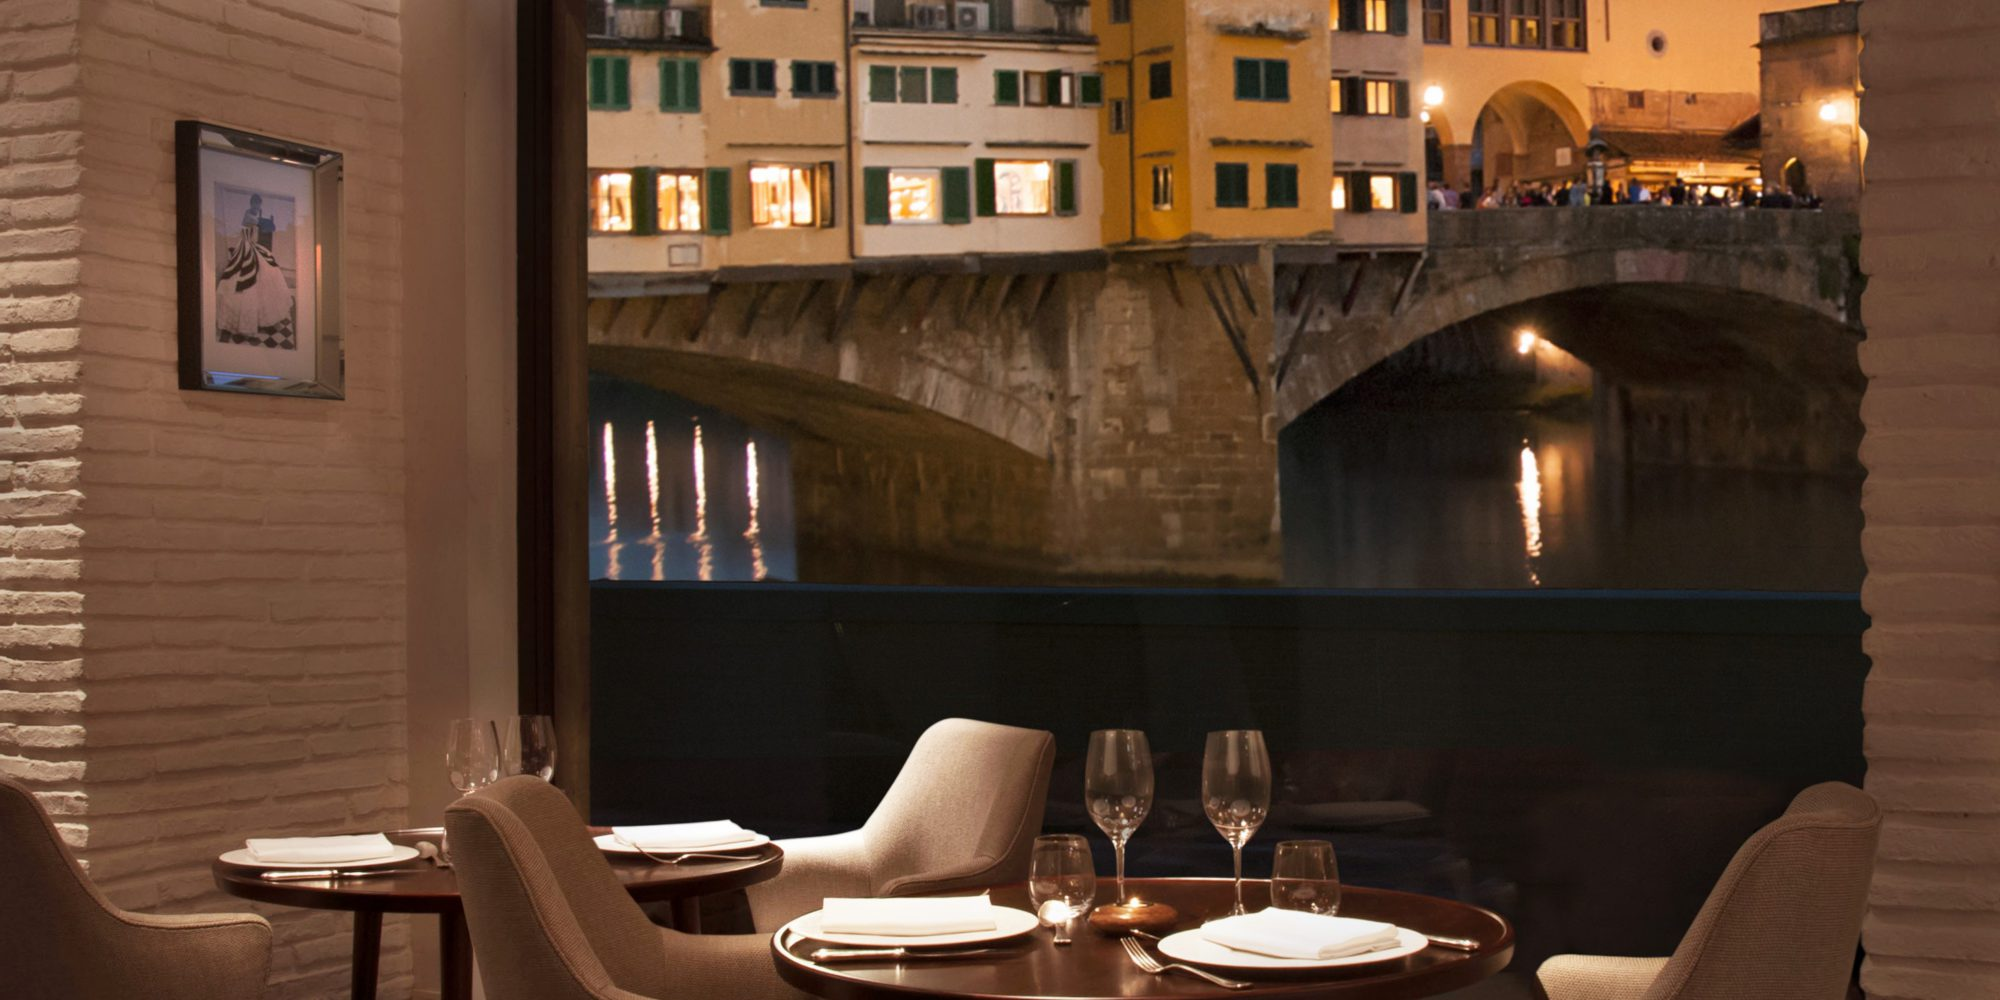 Portrait Firenze Caffè Dell'Oro is the ideal spot to enjoy traditional Italian dishes, admiring the Ponte Vecchio and the Arno river.